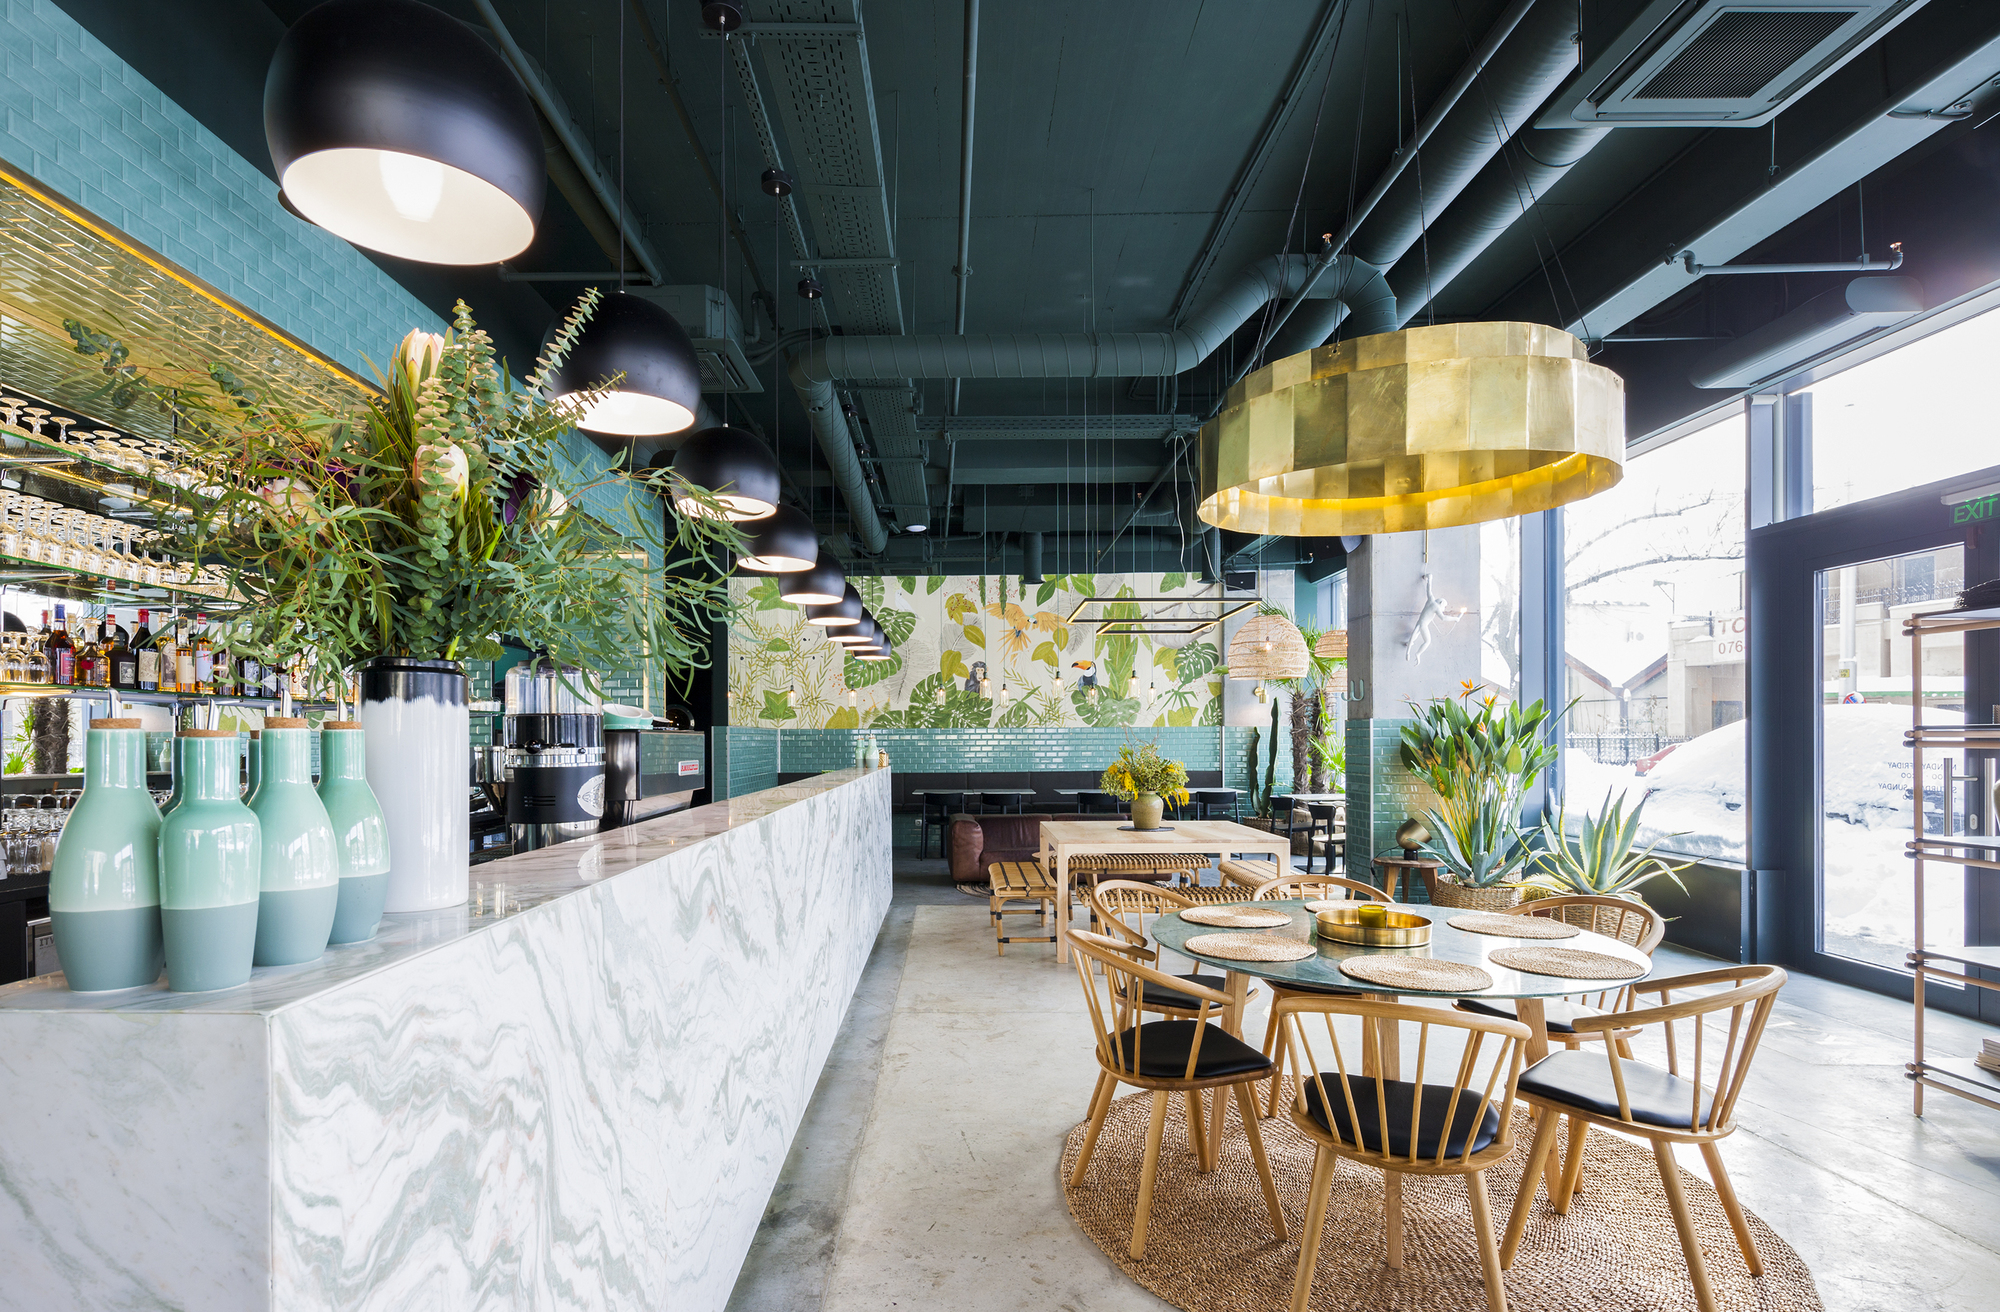 Gallery of kane world food studio bogdan ciocodeic 6 for Decoration urban jungle